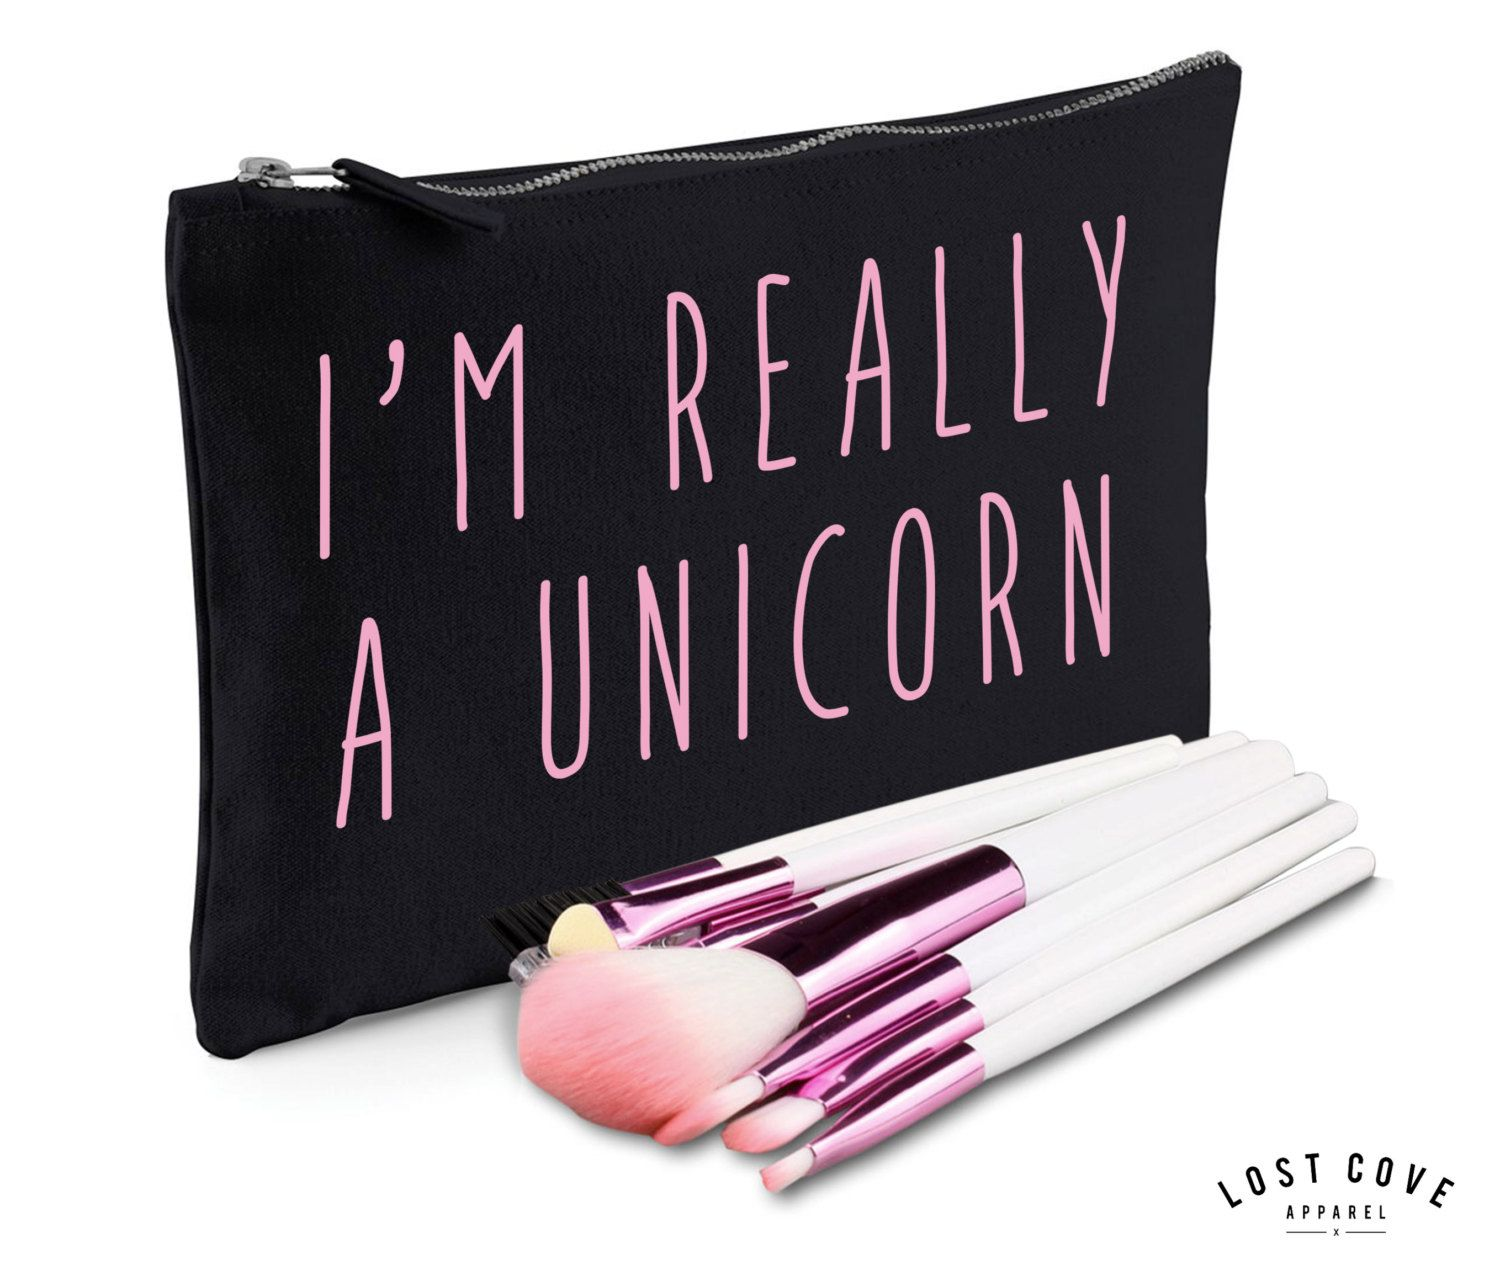 I'm Really A Unicorn Slogan Make Up Bag Case Makeup Gift Clutch Contents Pink (8.99 GBP) by LostCoveApparel